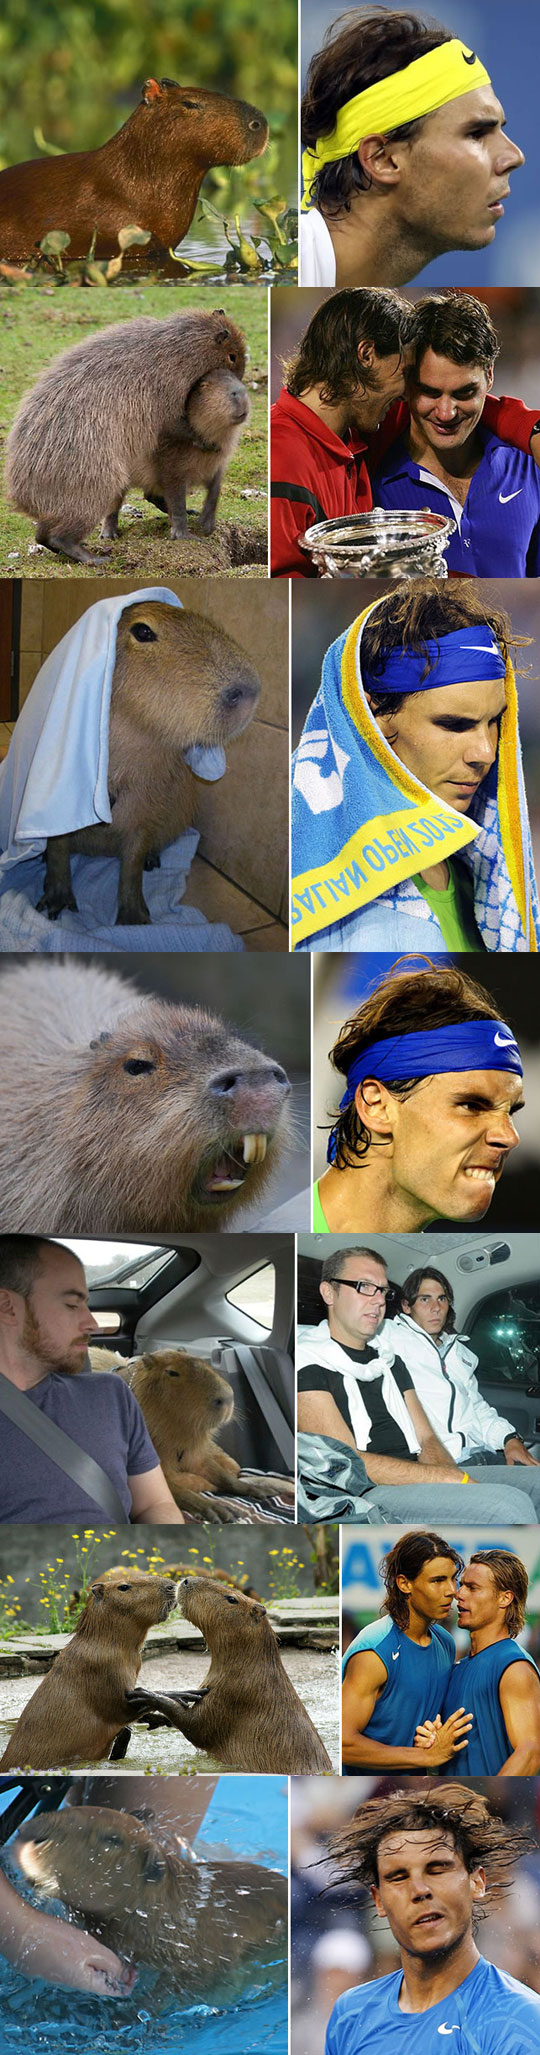 funny-Rafa-Nadal-tennis-player-animal